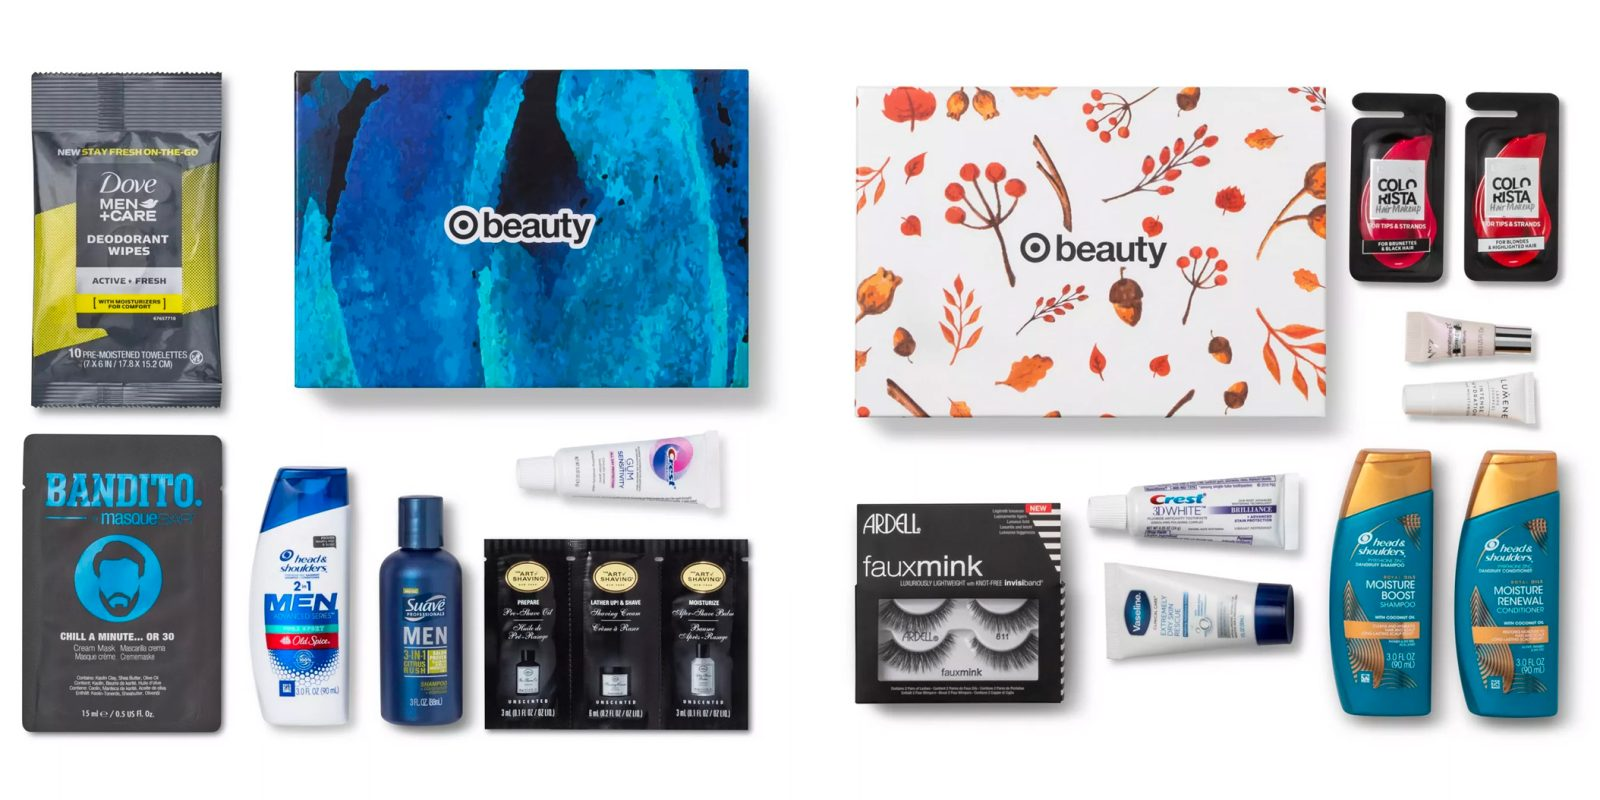 Target's October Beauty Boxes offer options for men and women at $7 shipped